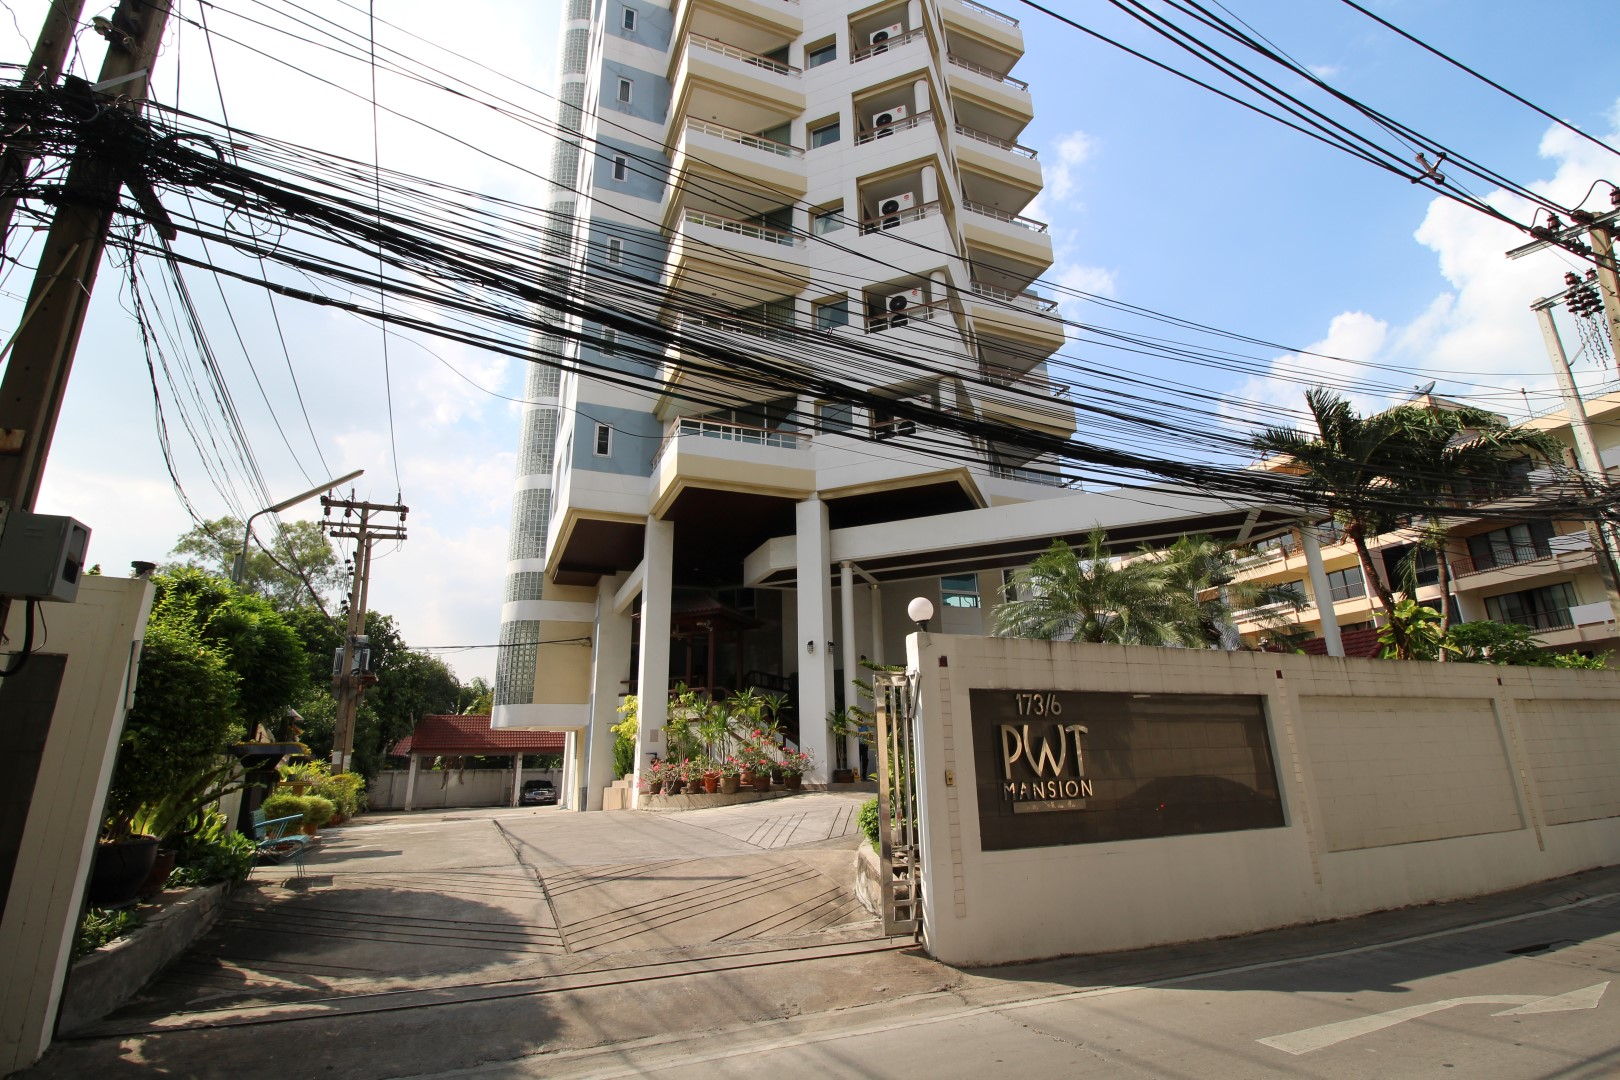 pwt mansion sukhumvit 16 2